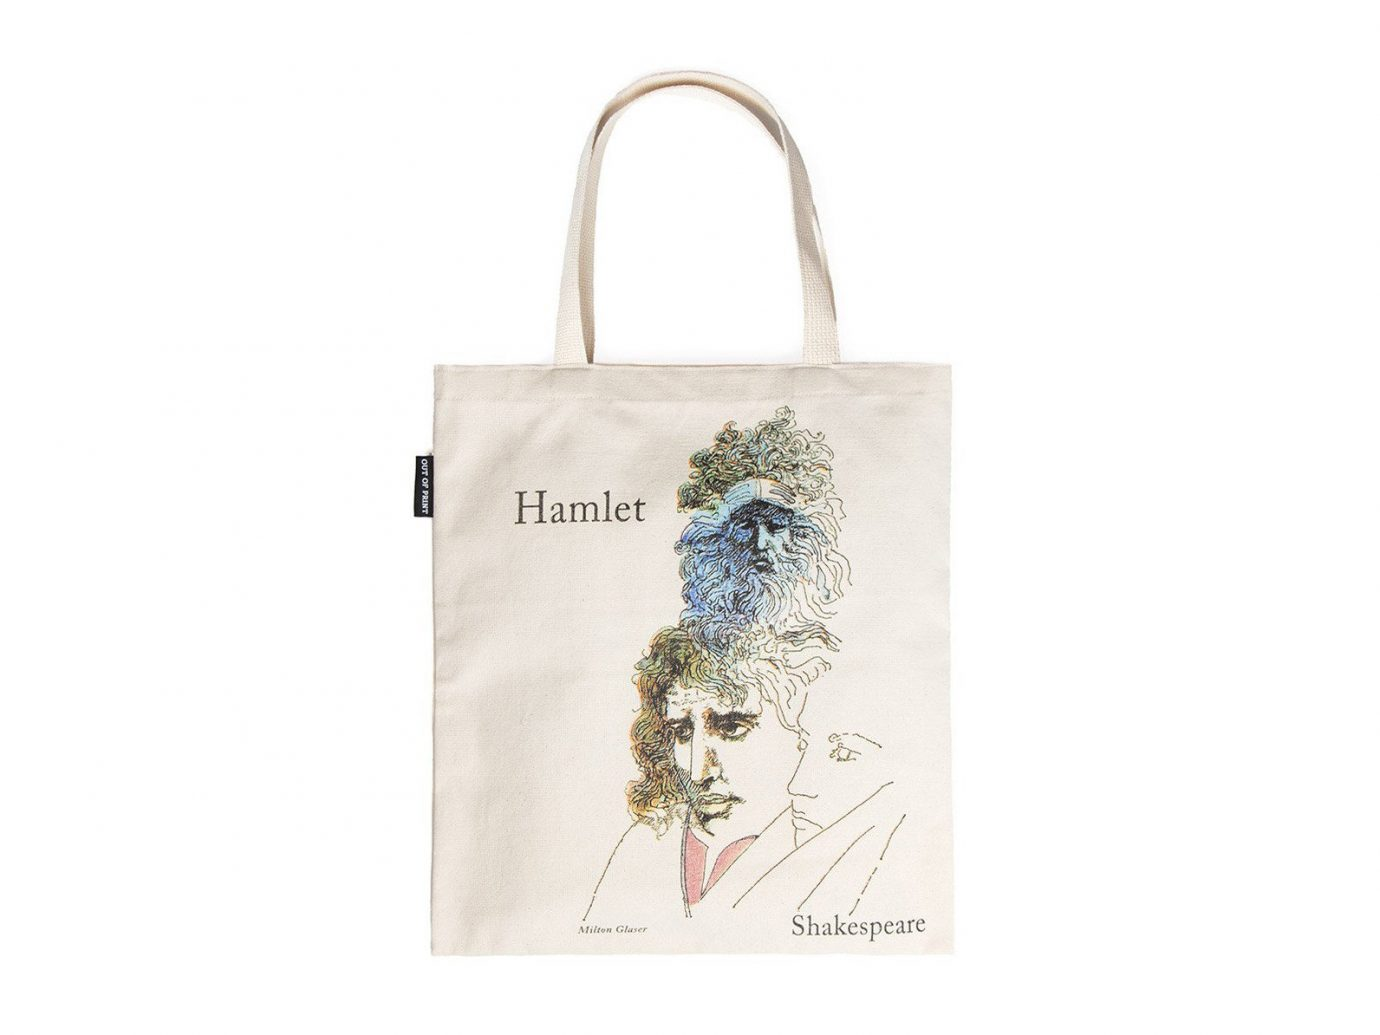 Shop Out of Print Shakespeare Tote Bag on Amazon